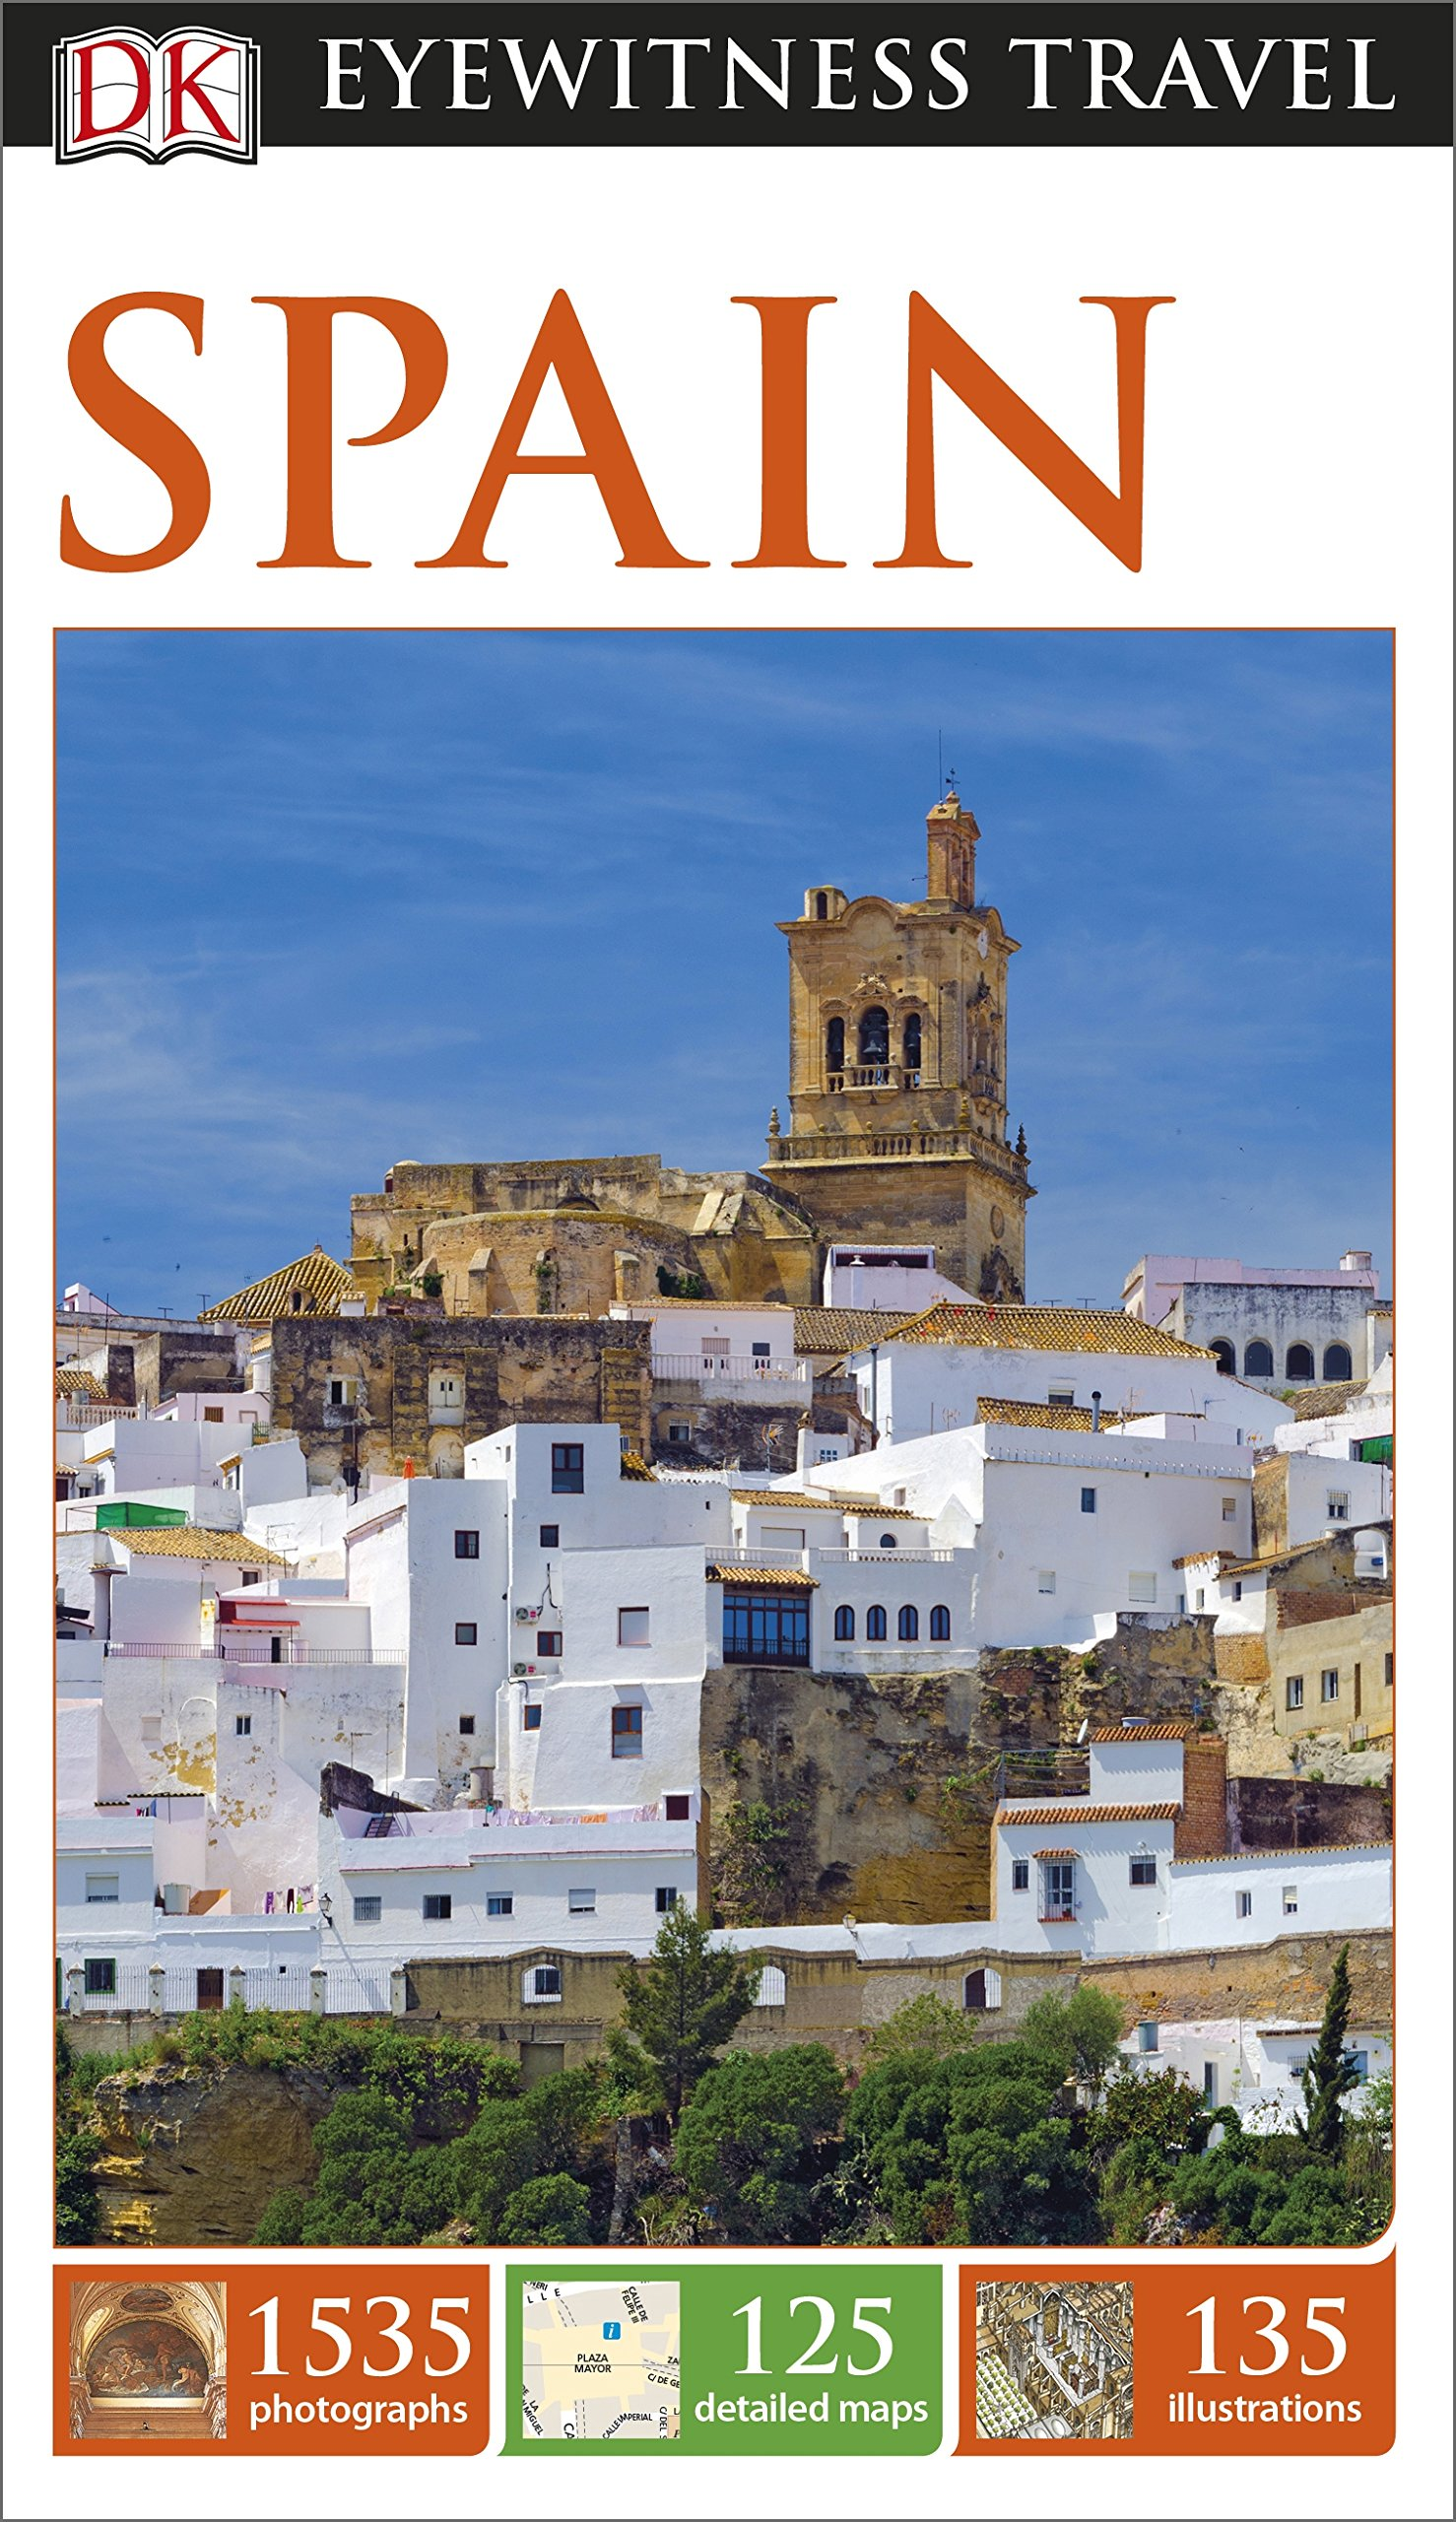 Spain Eyewitness Travel Guide Eyewitness Travel Guides: Amazon.es: Vv.Aa.: Libros en idiomas extranjeros